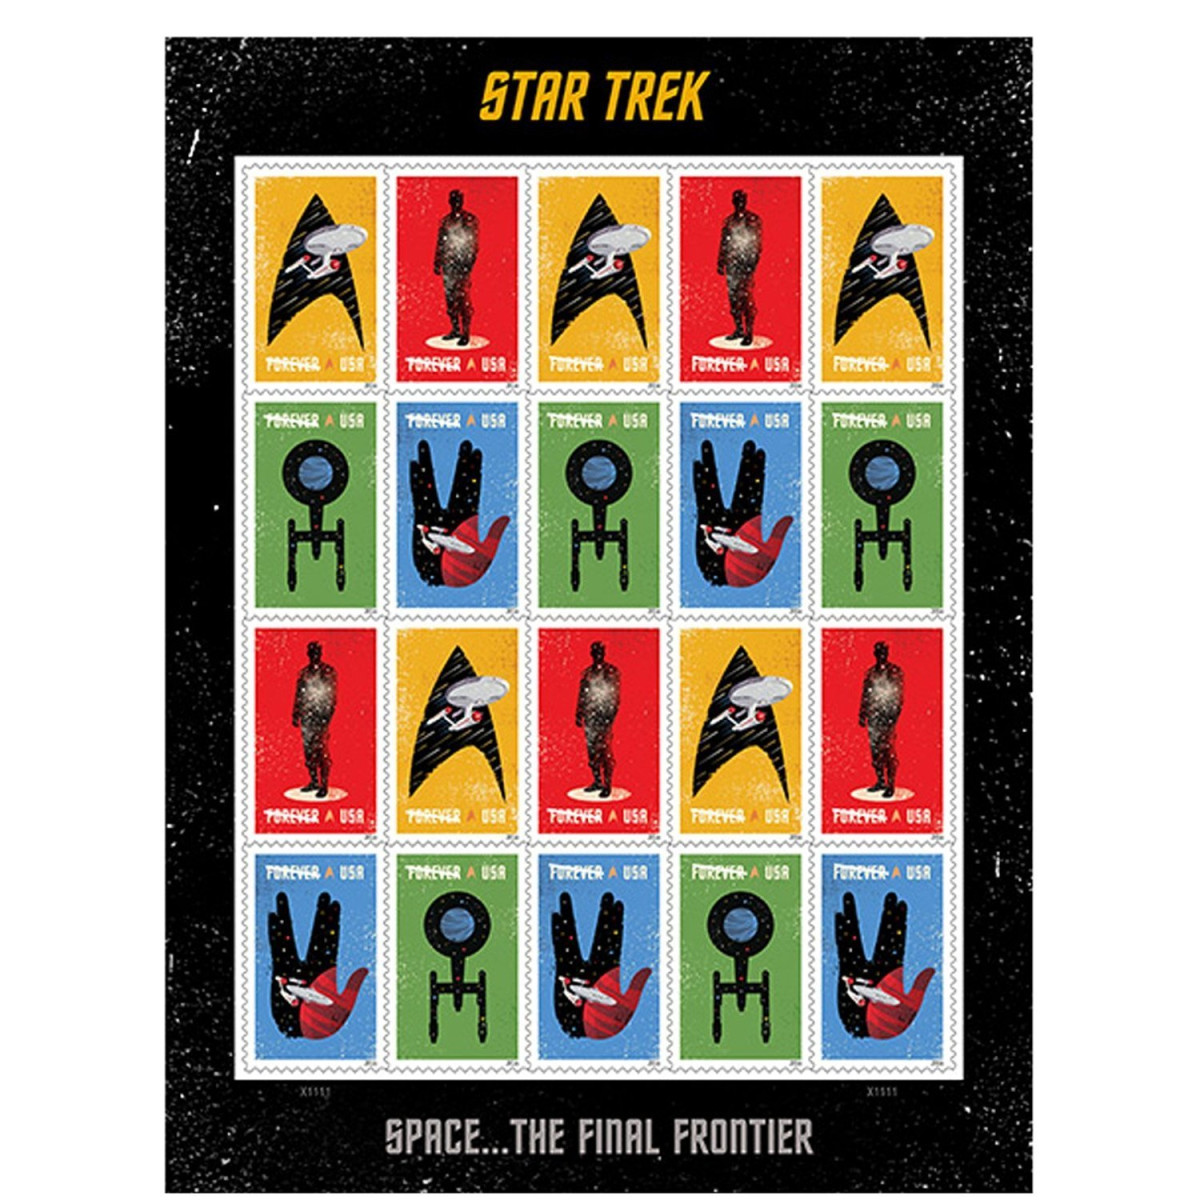 20 Star Trek USPS Forever First Class Postage Stamps Enterprise classic TV  1 sheet of 20 stamps